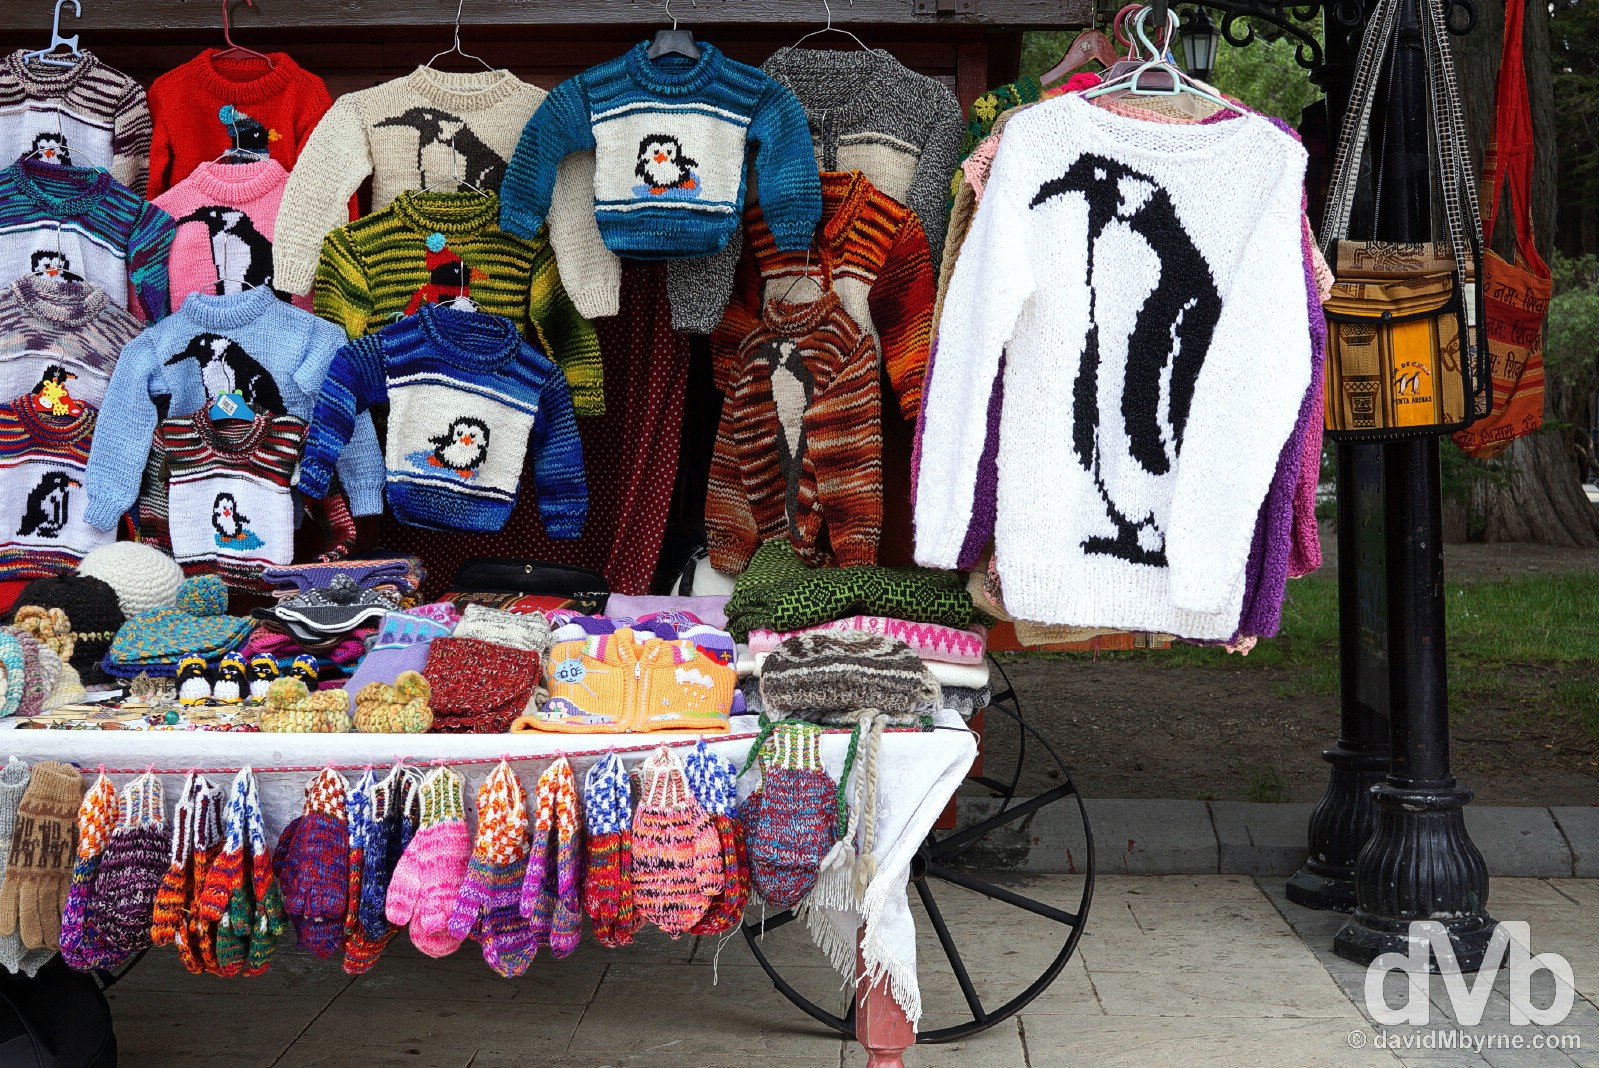 For sale off Plaza Munoz Gamero in Punta Arenas, Chile. November 10, 2015.